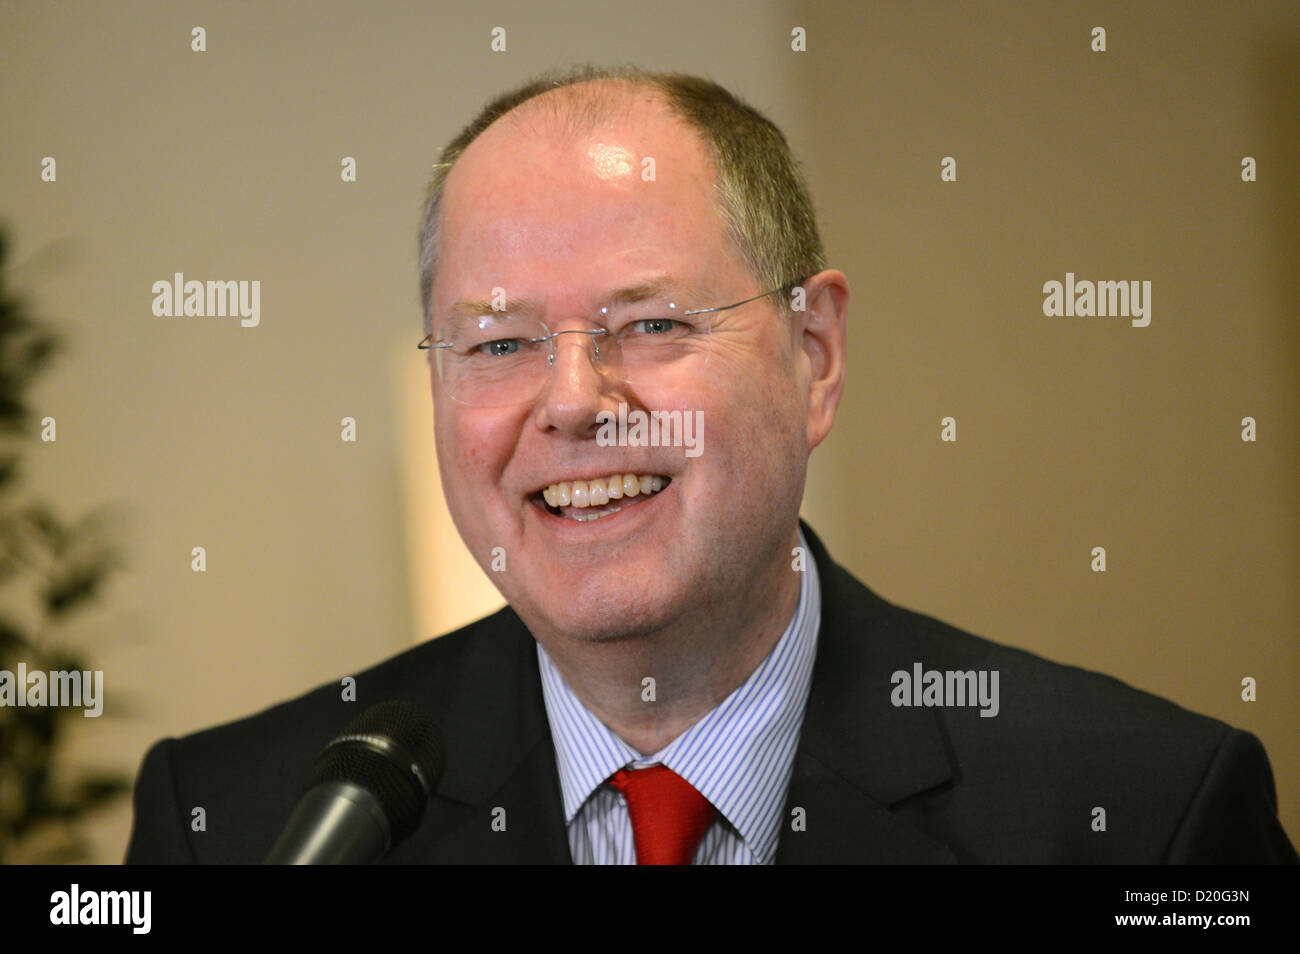 Chancellor candidate of the SPD Peer Steinbrueck talks to journalists at the closed meeting of the Bundestag parliamentary - Stock Image